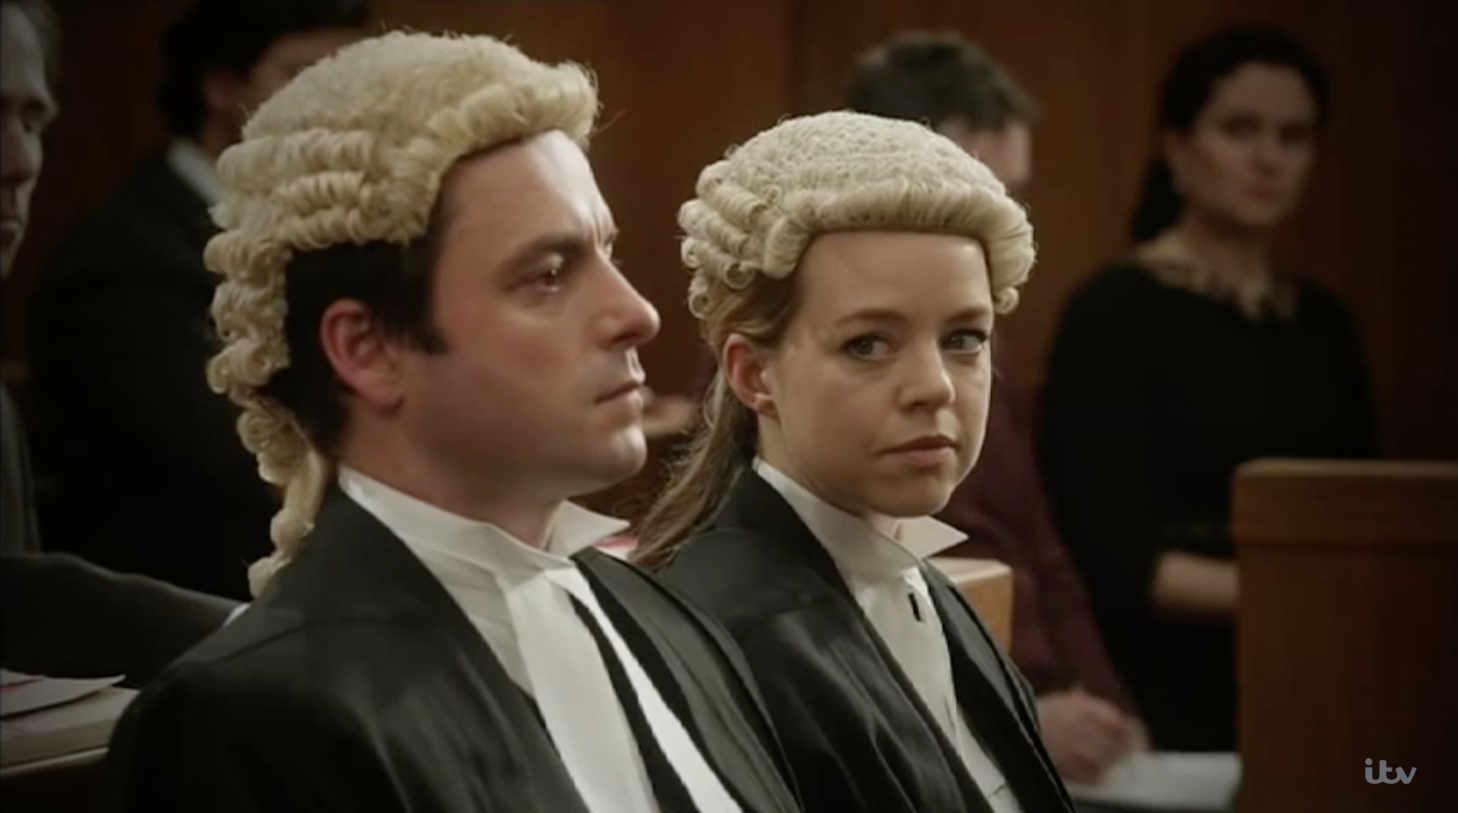 Why Do Barristers Wear Those Stupid Wigs?